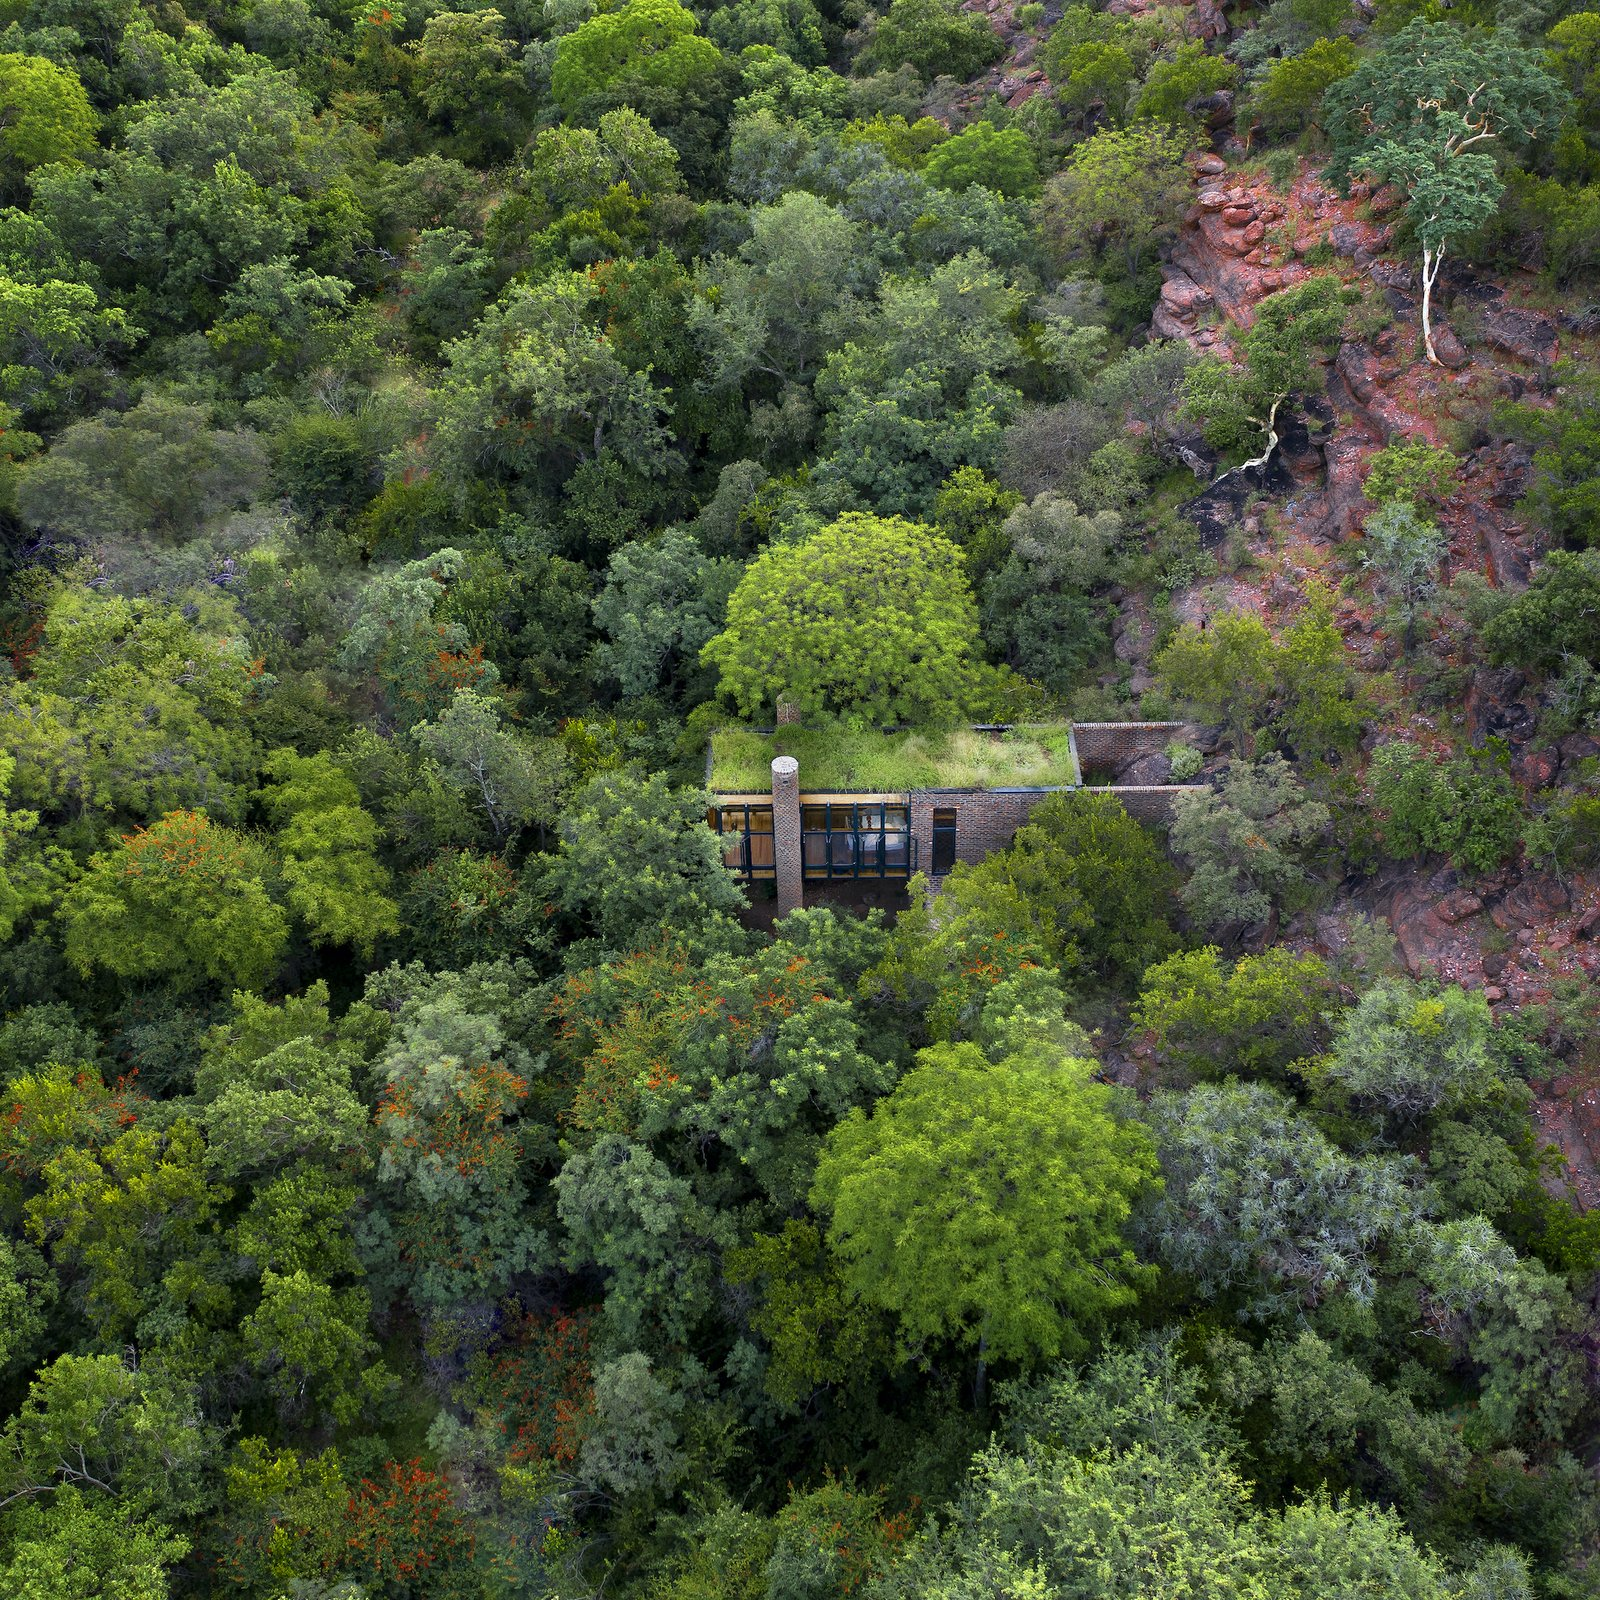 Aerial shot of House of the Tall Chimneys by Frankie Pappas.